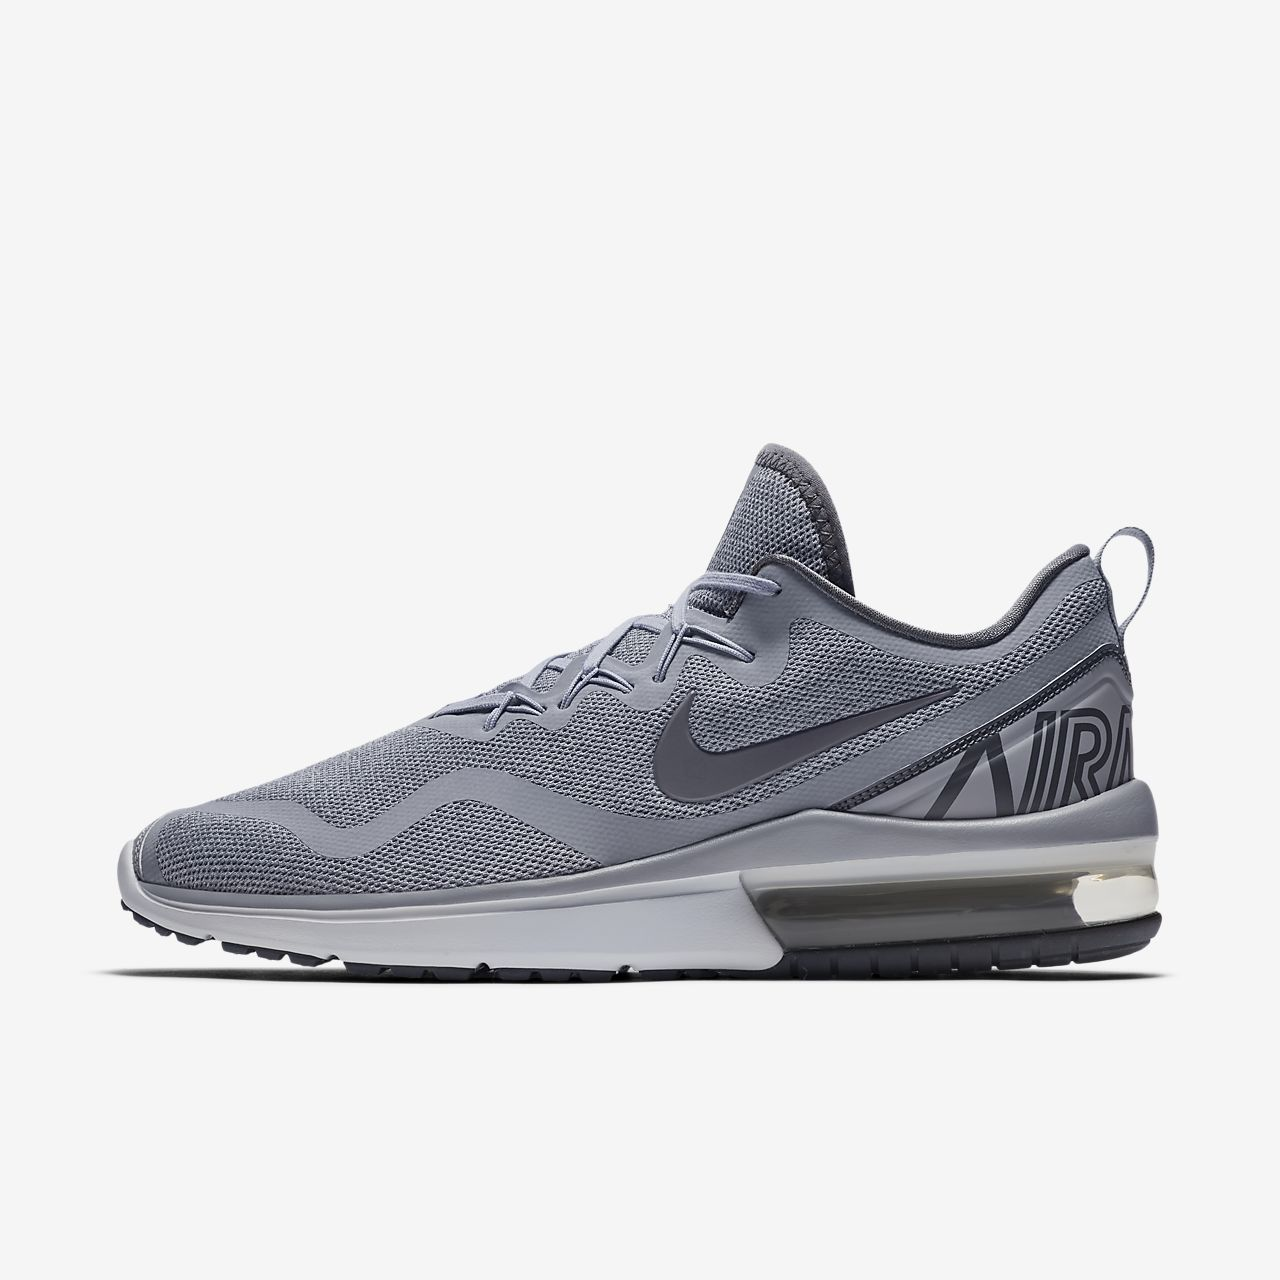 Nike Air Max Fury Men's Running Shoe